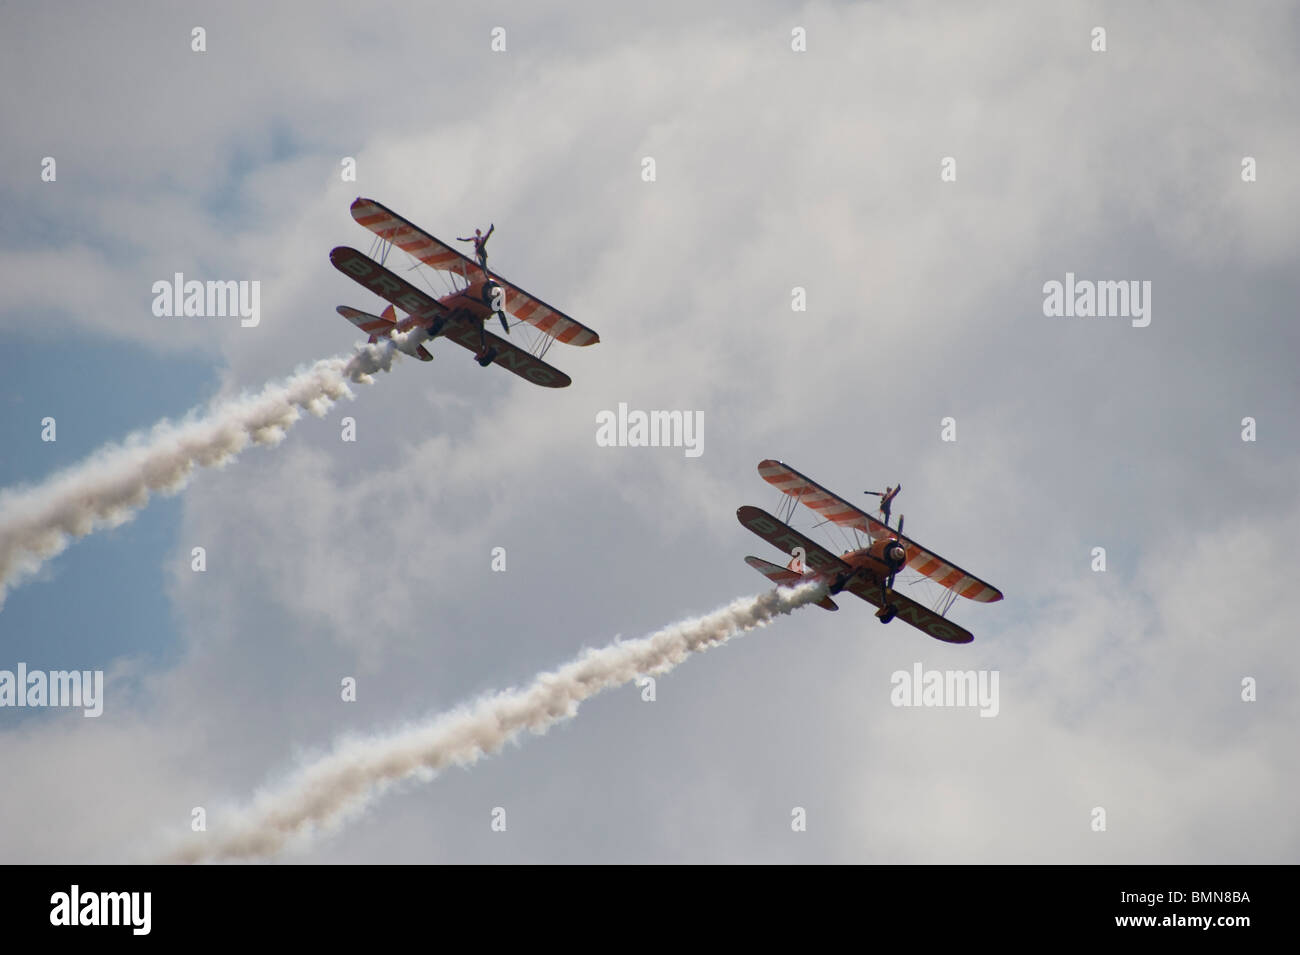 breitling sky walking team - Stock Image